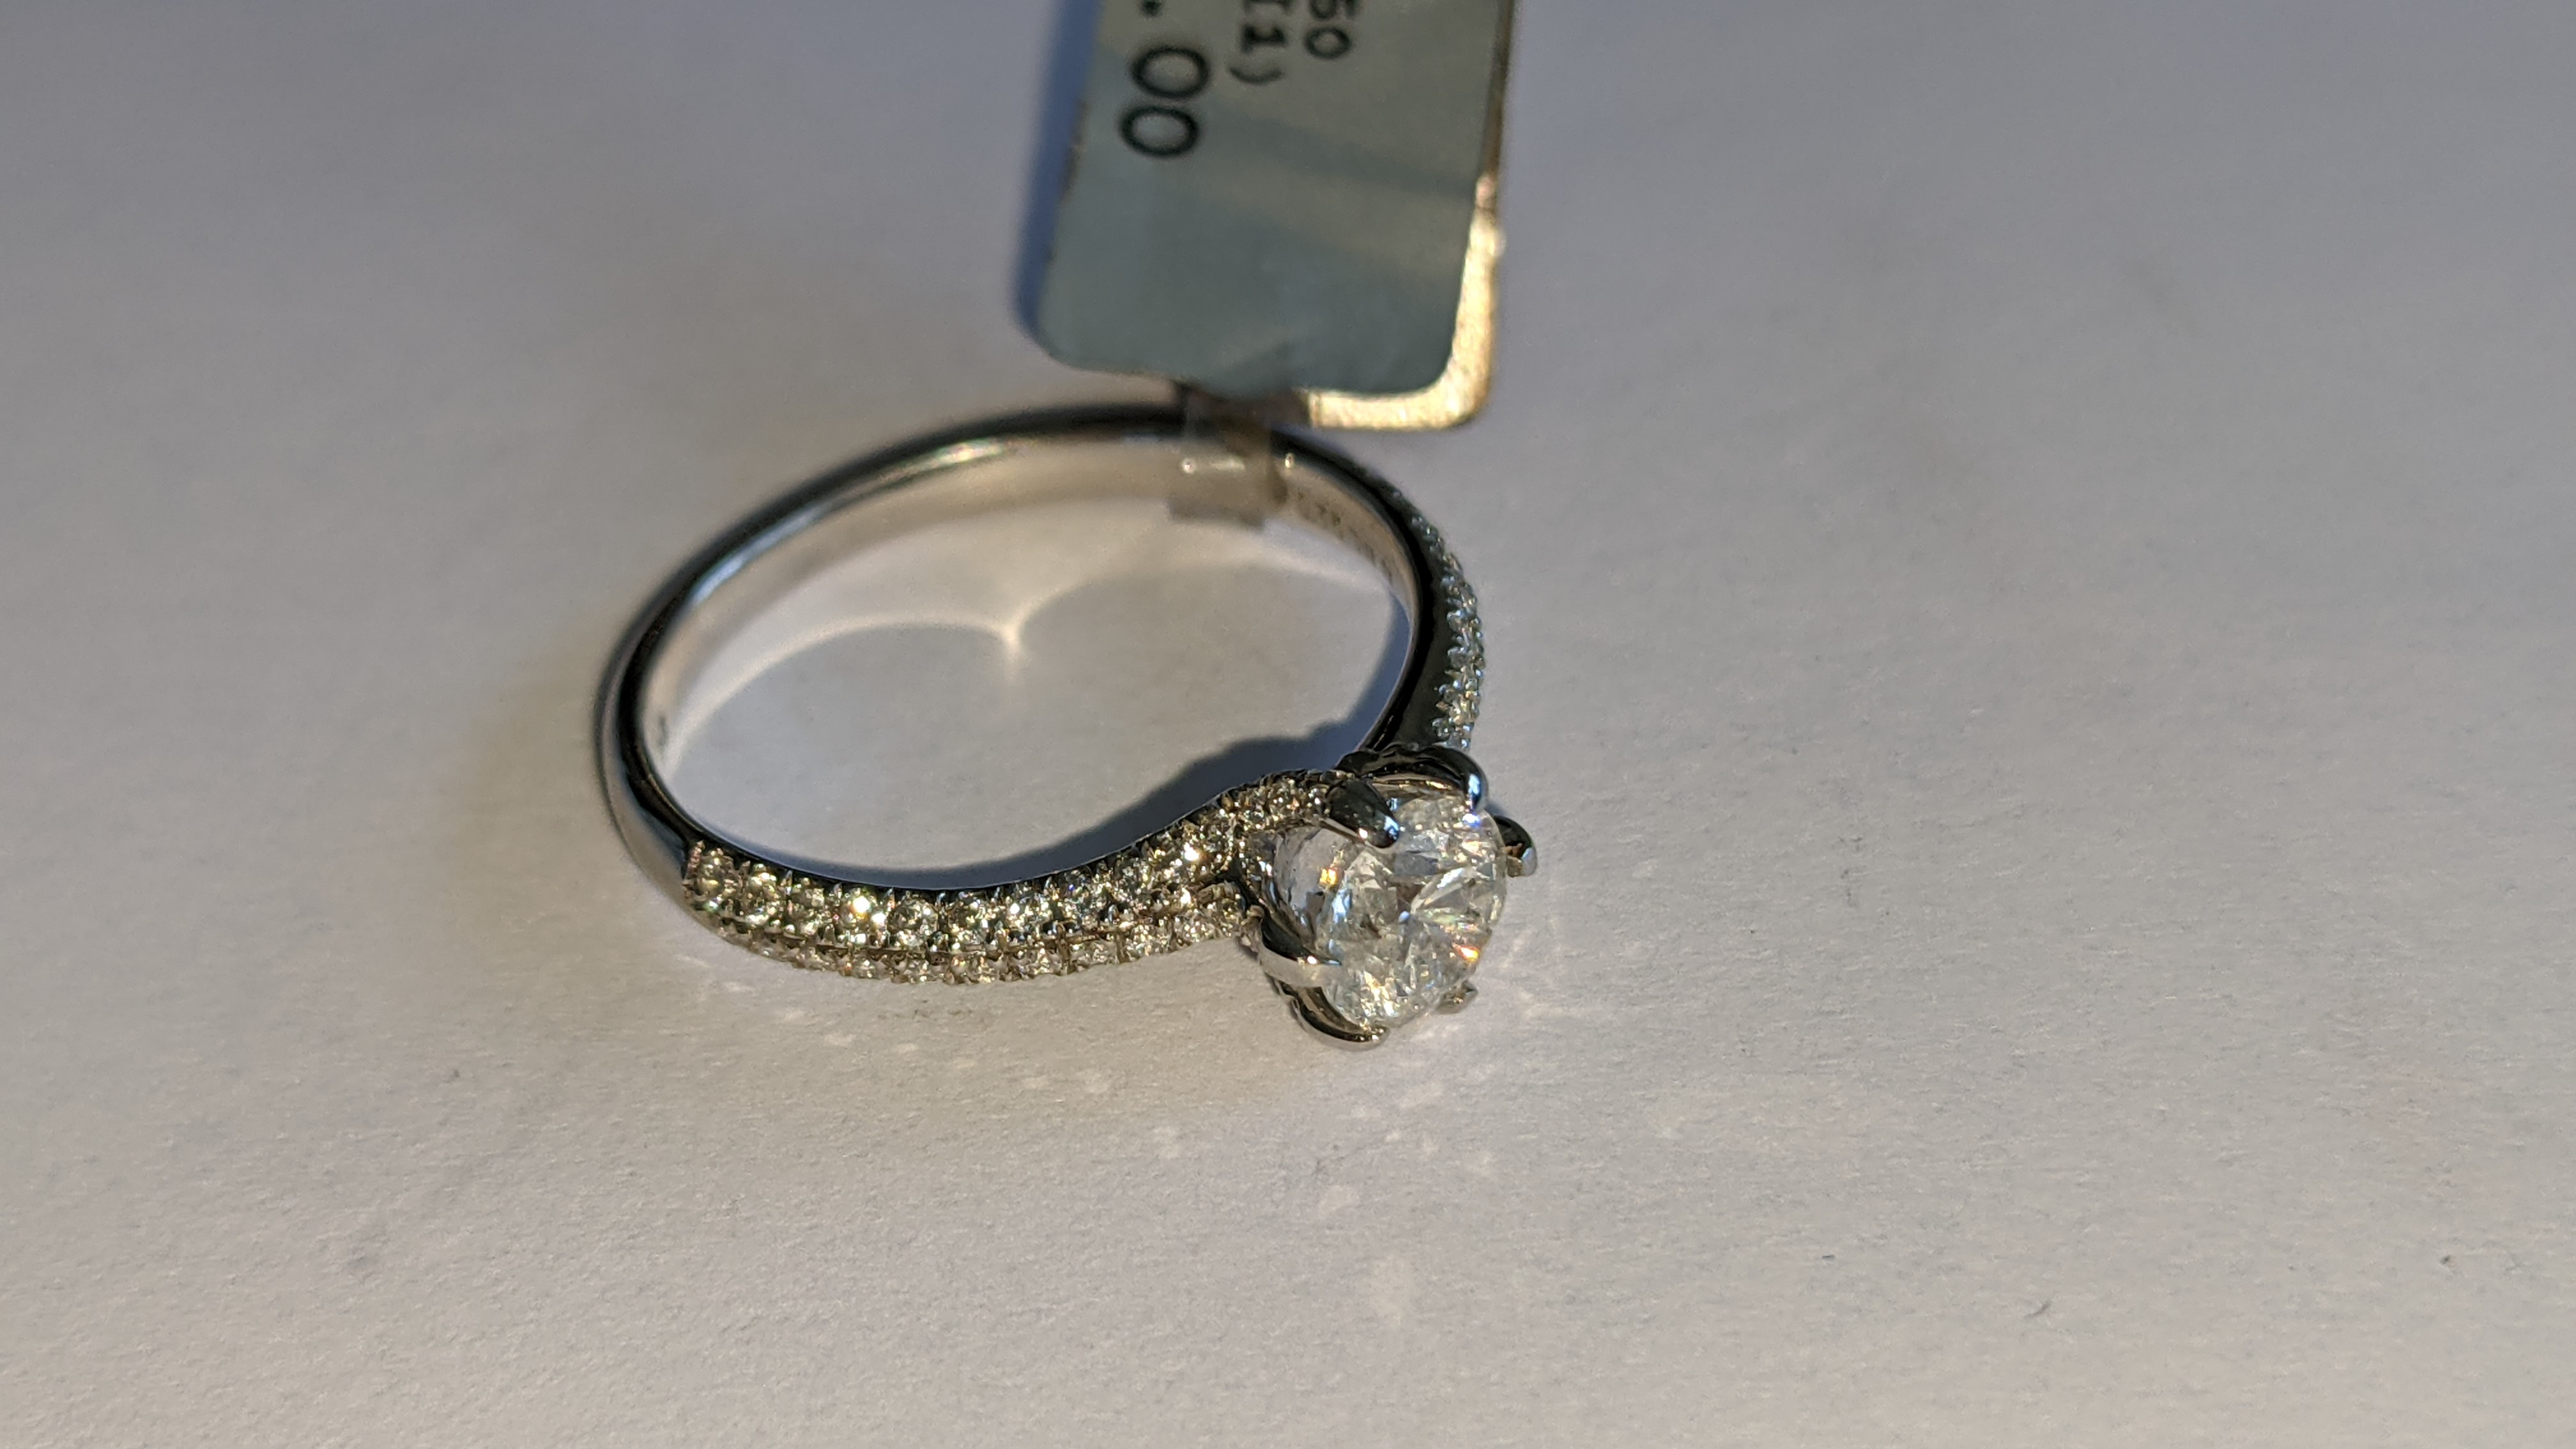 Platinum 950 diamond ring with 0.55ct central stone & 0.348ct of smaller stones on the shoulders. RR - Image 6 of 16